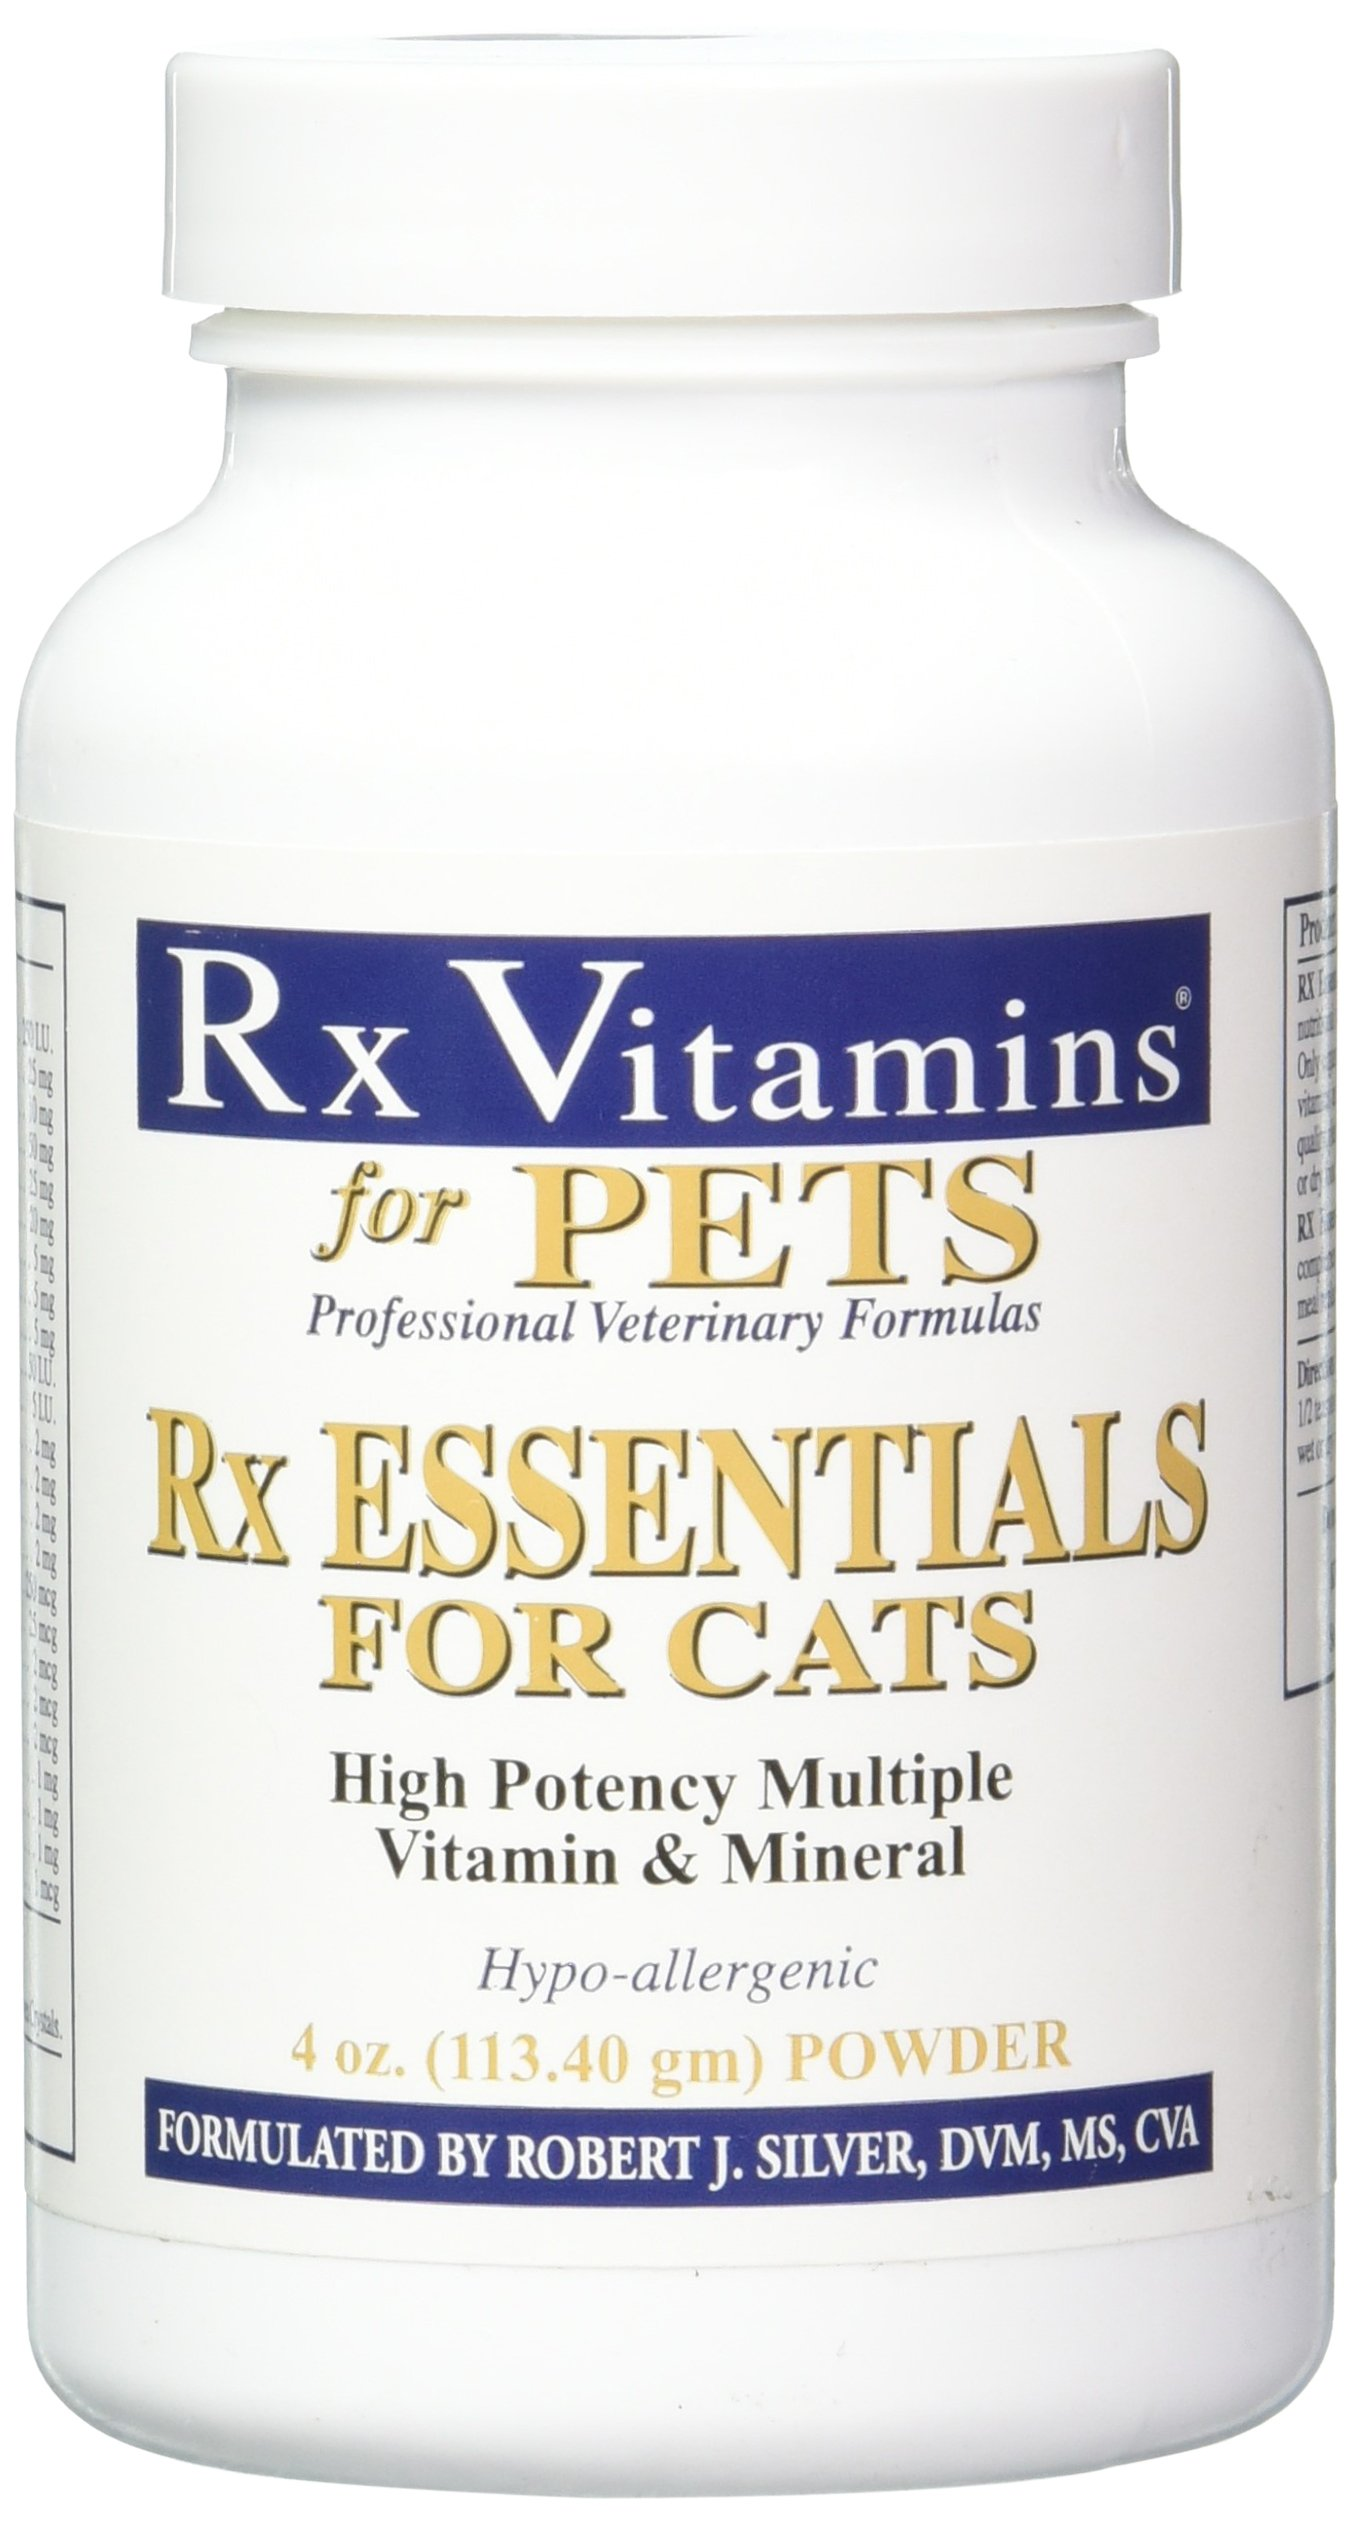 Rx Vitamins Essentials for Cats - Vitamin & Mineral Multivitamin Supplement - Add to Wet or Dry Cat Food - Powder 4 oz by Rx Vitamins